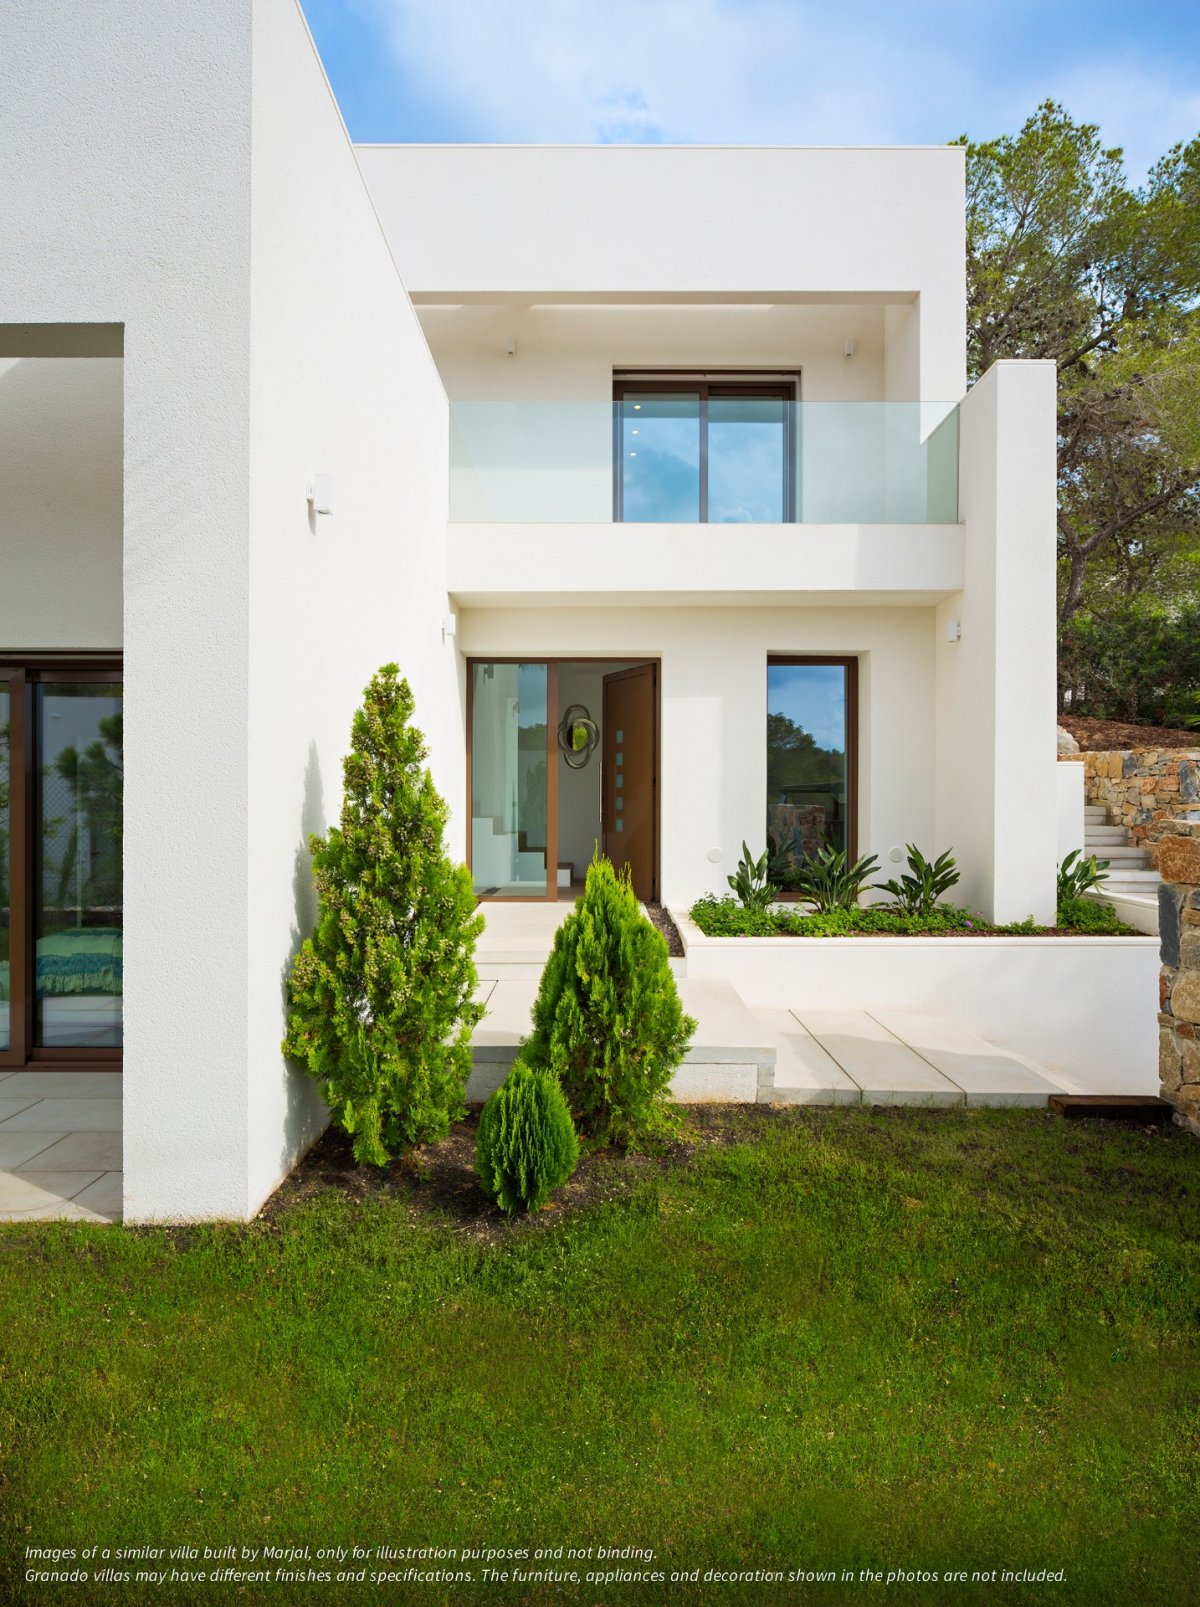 Modern detached villa next to golf course. - Keysol Property S.L.